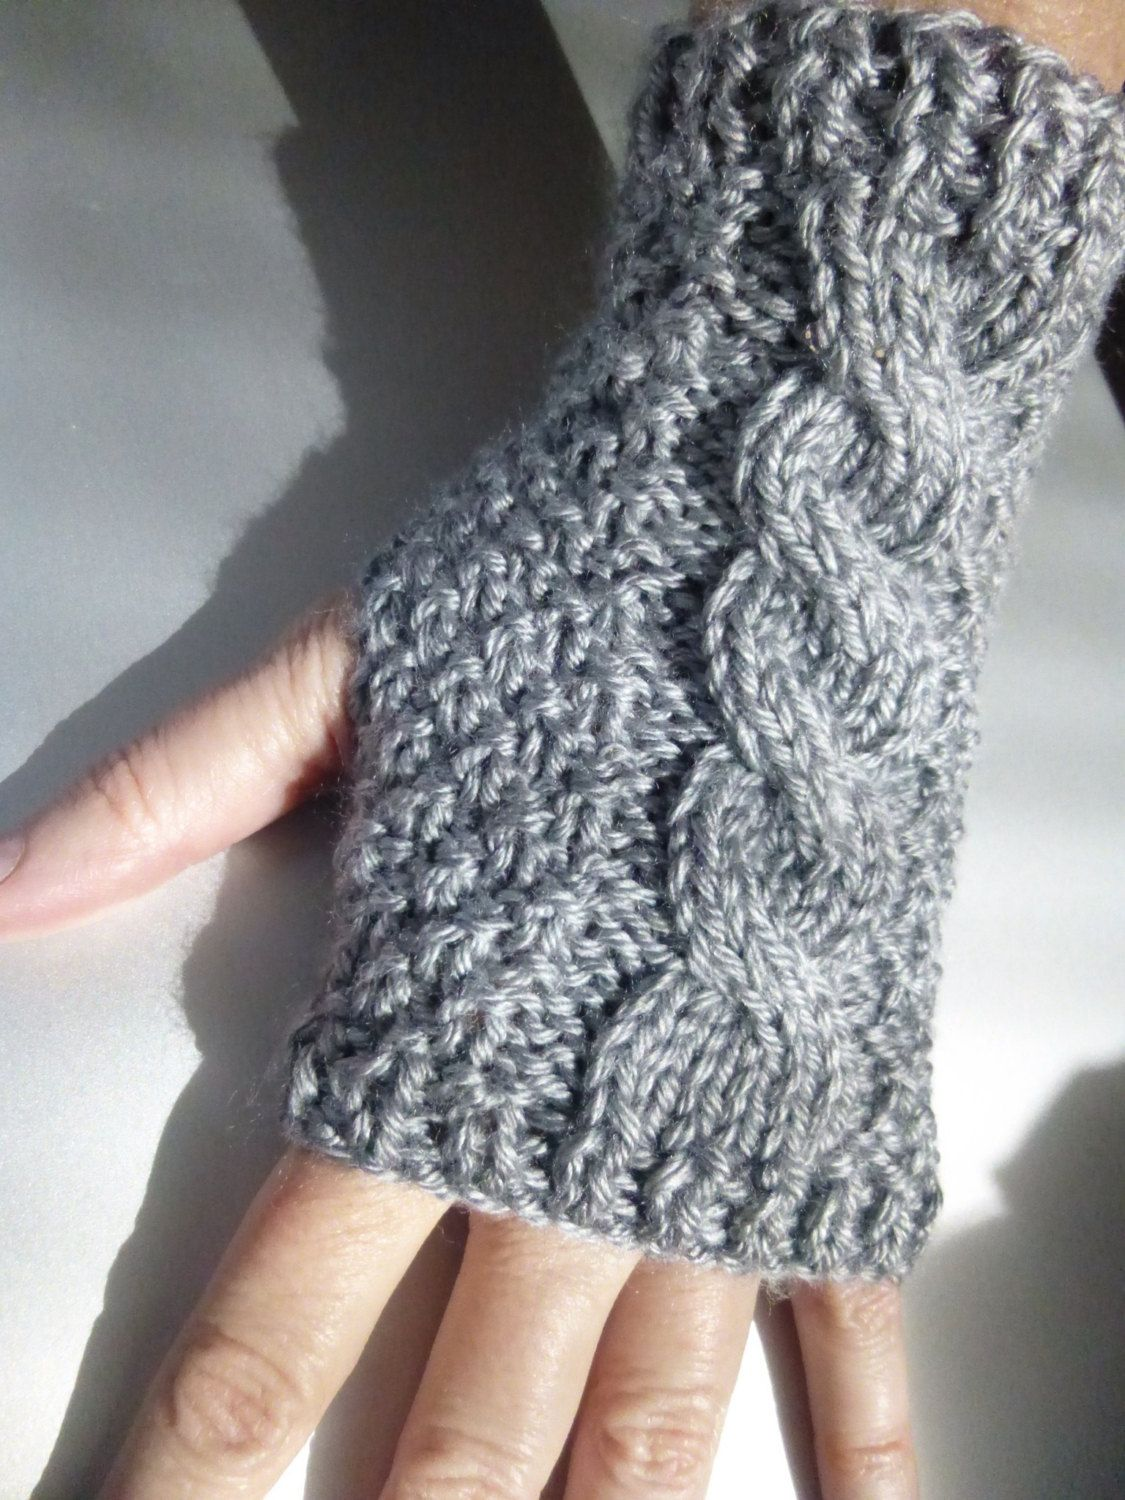 Silky Grey Cable Knit Wrist Warmers / Fingerless Gloves | Knitting ...